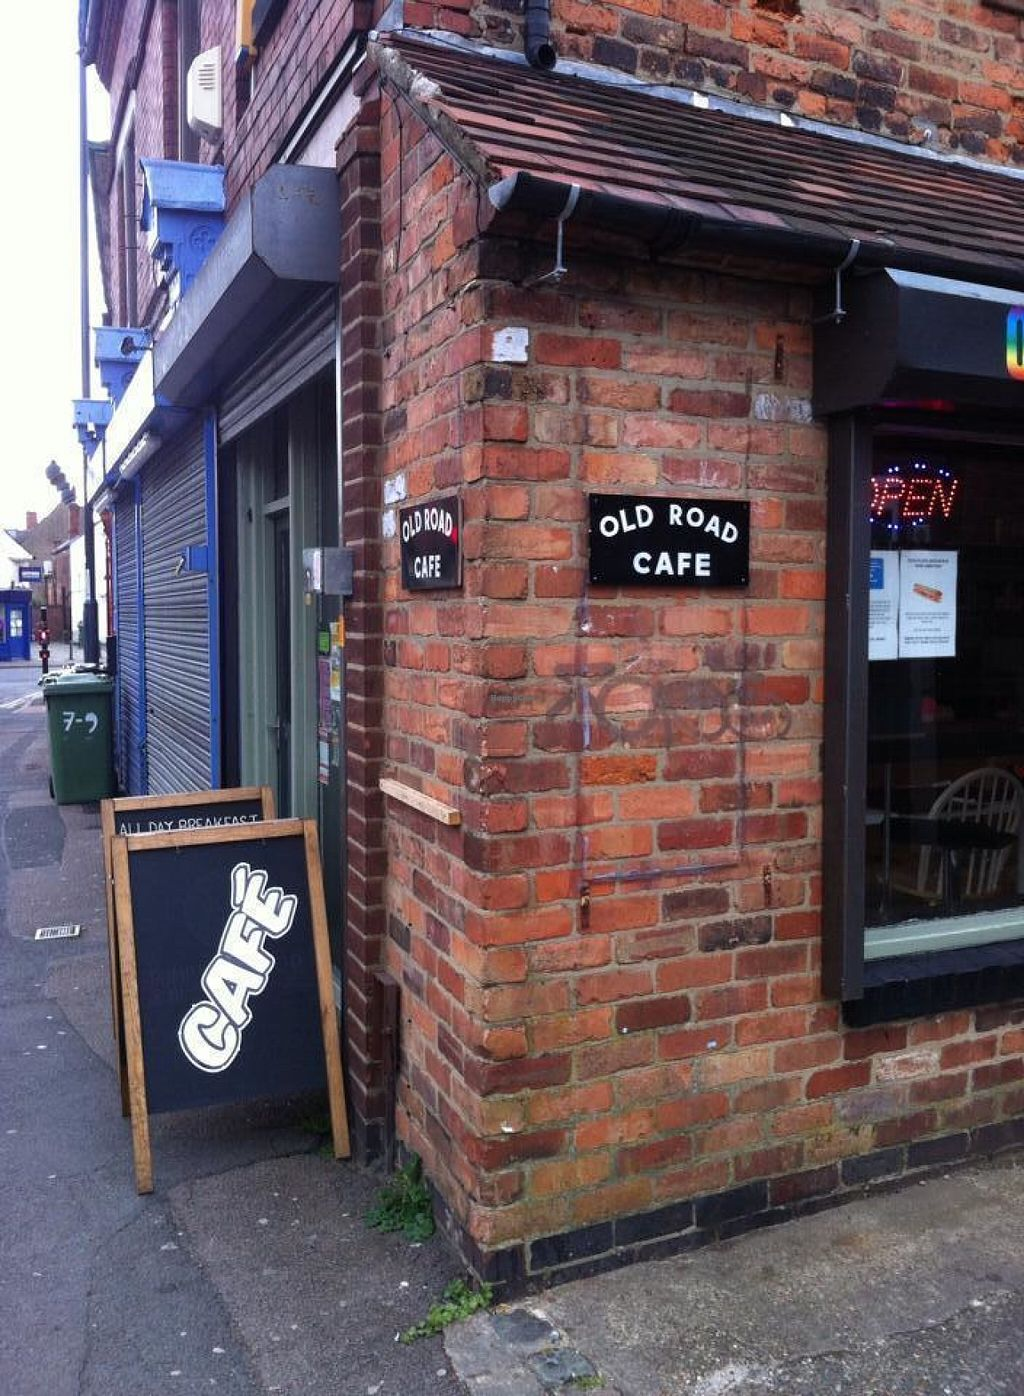 """Photo of Old Road Cafe  by <a href=""""/members/profile/Meaks"""">Meaks</a> <br/>Exterior <br/> July 30, 2016  - <a href='/contact/abuse/image/67101/163566'>Report</a>"""